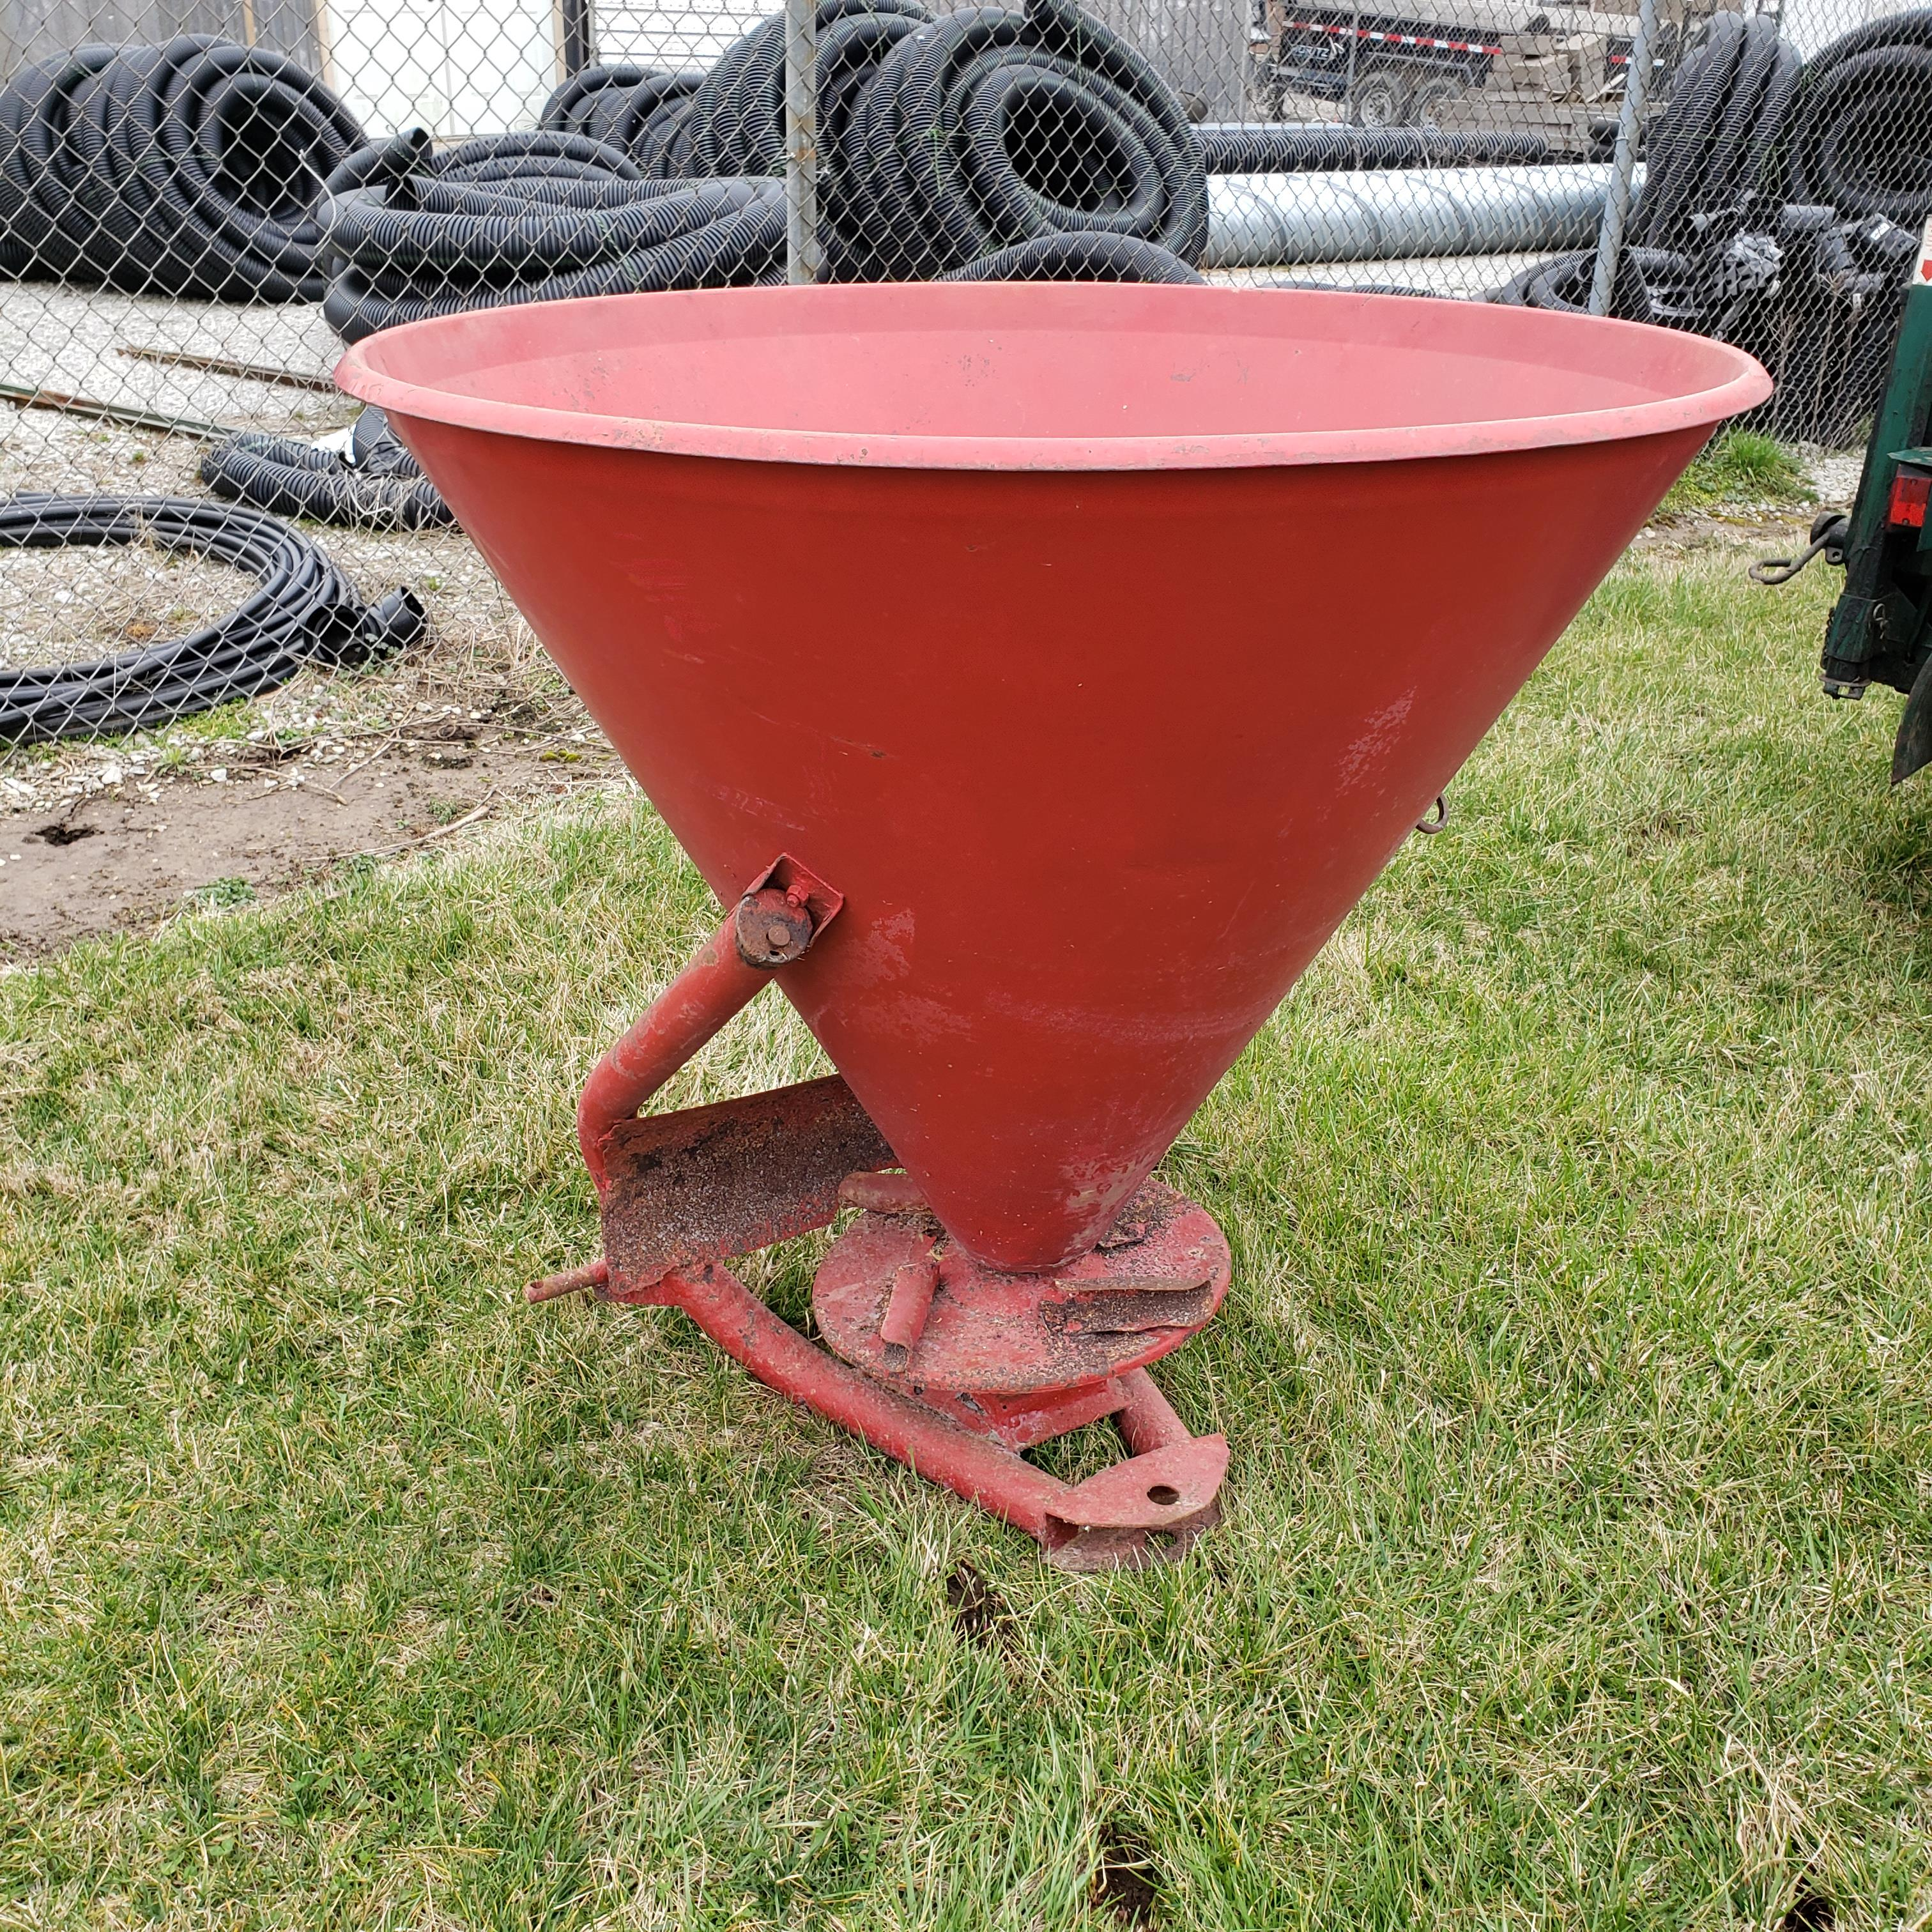 Lot 8 - 3 Point Hitch Mounted Broadcast Spreader